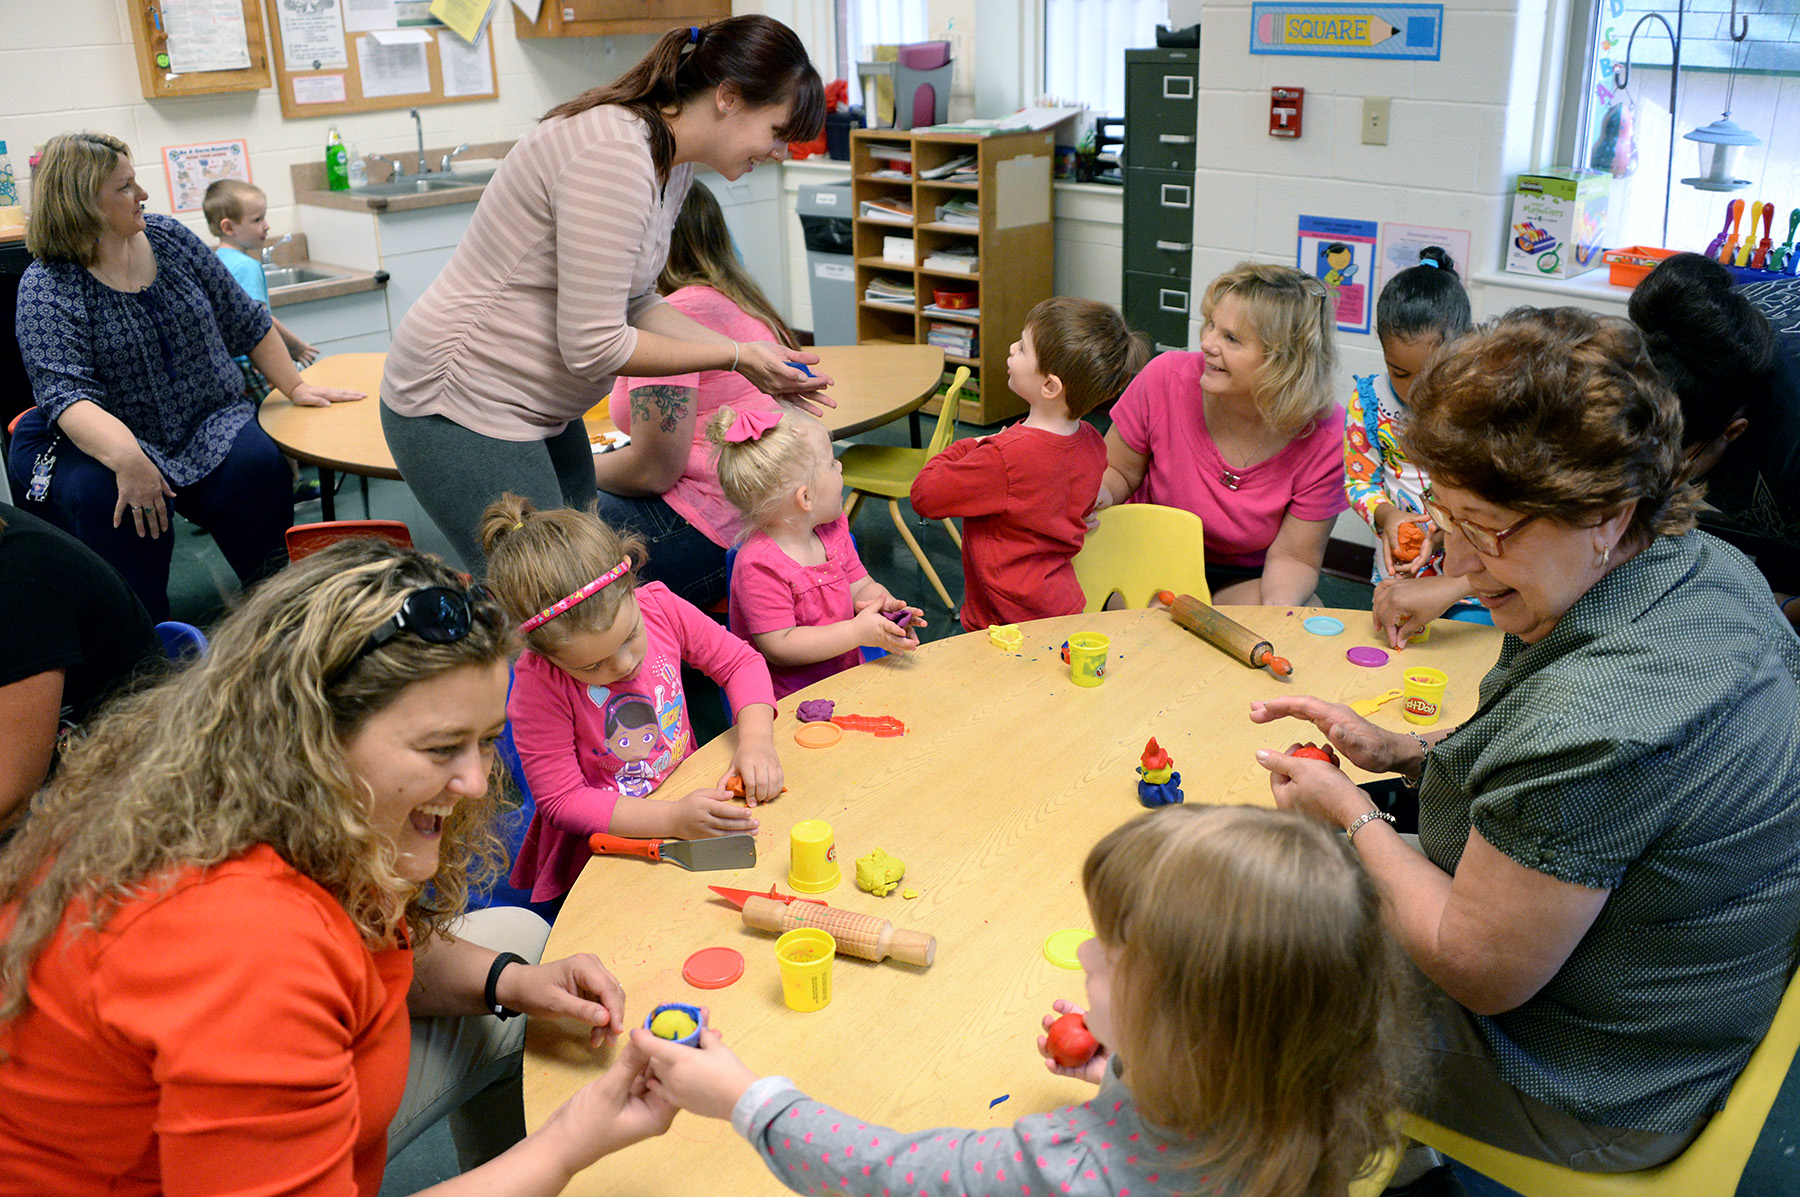 Shippensburg Head Start has been meeting the needs of local families since 1971.